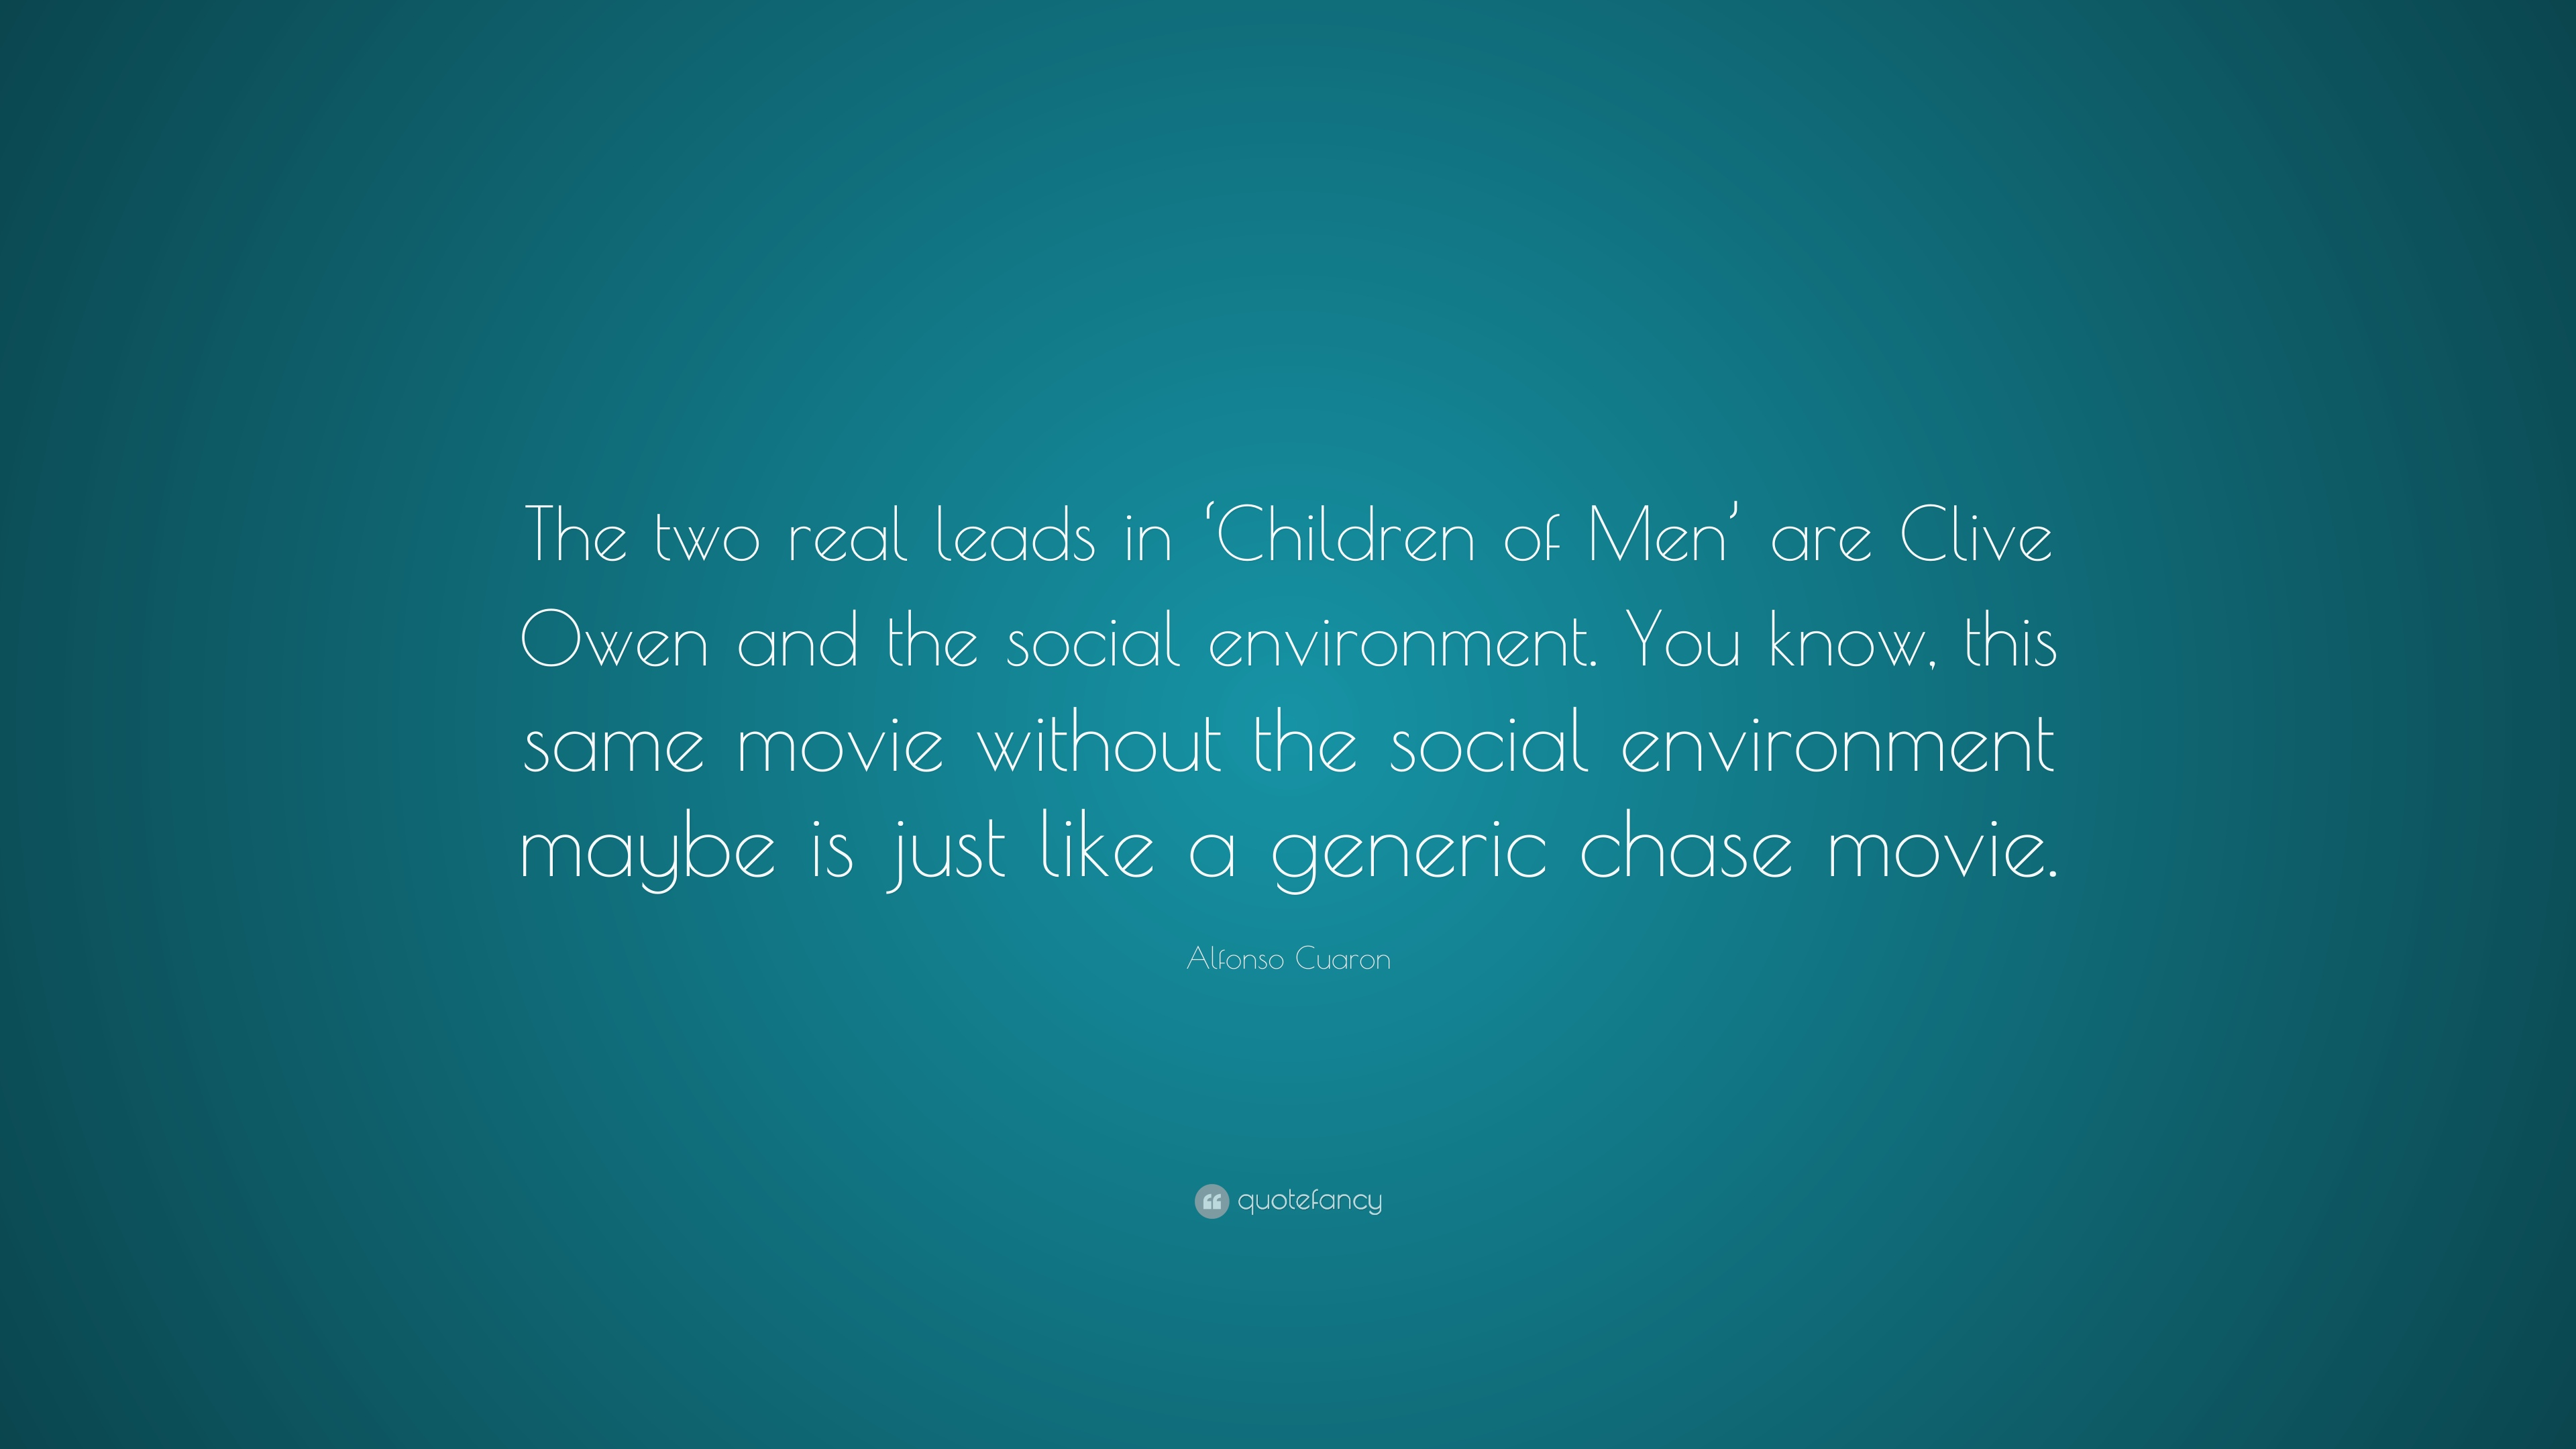 Alfonso Cuaron Quote The Two Real Leads In Children Of Men Are